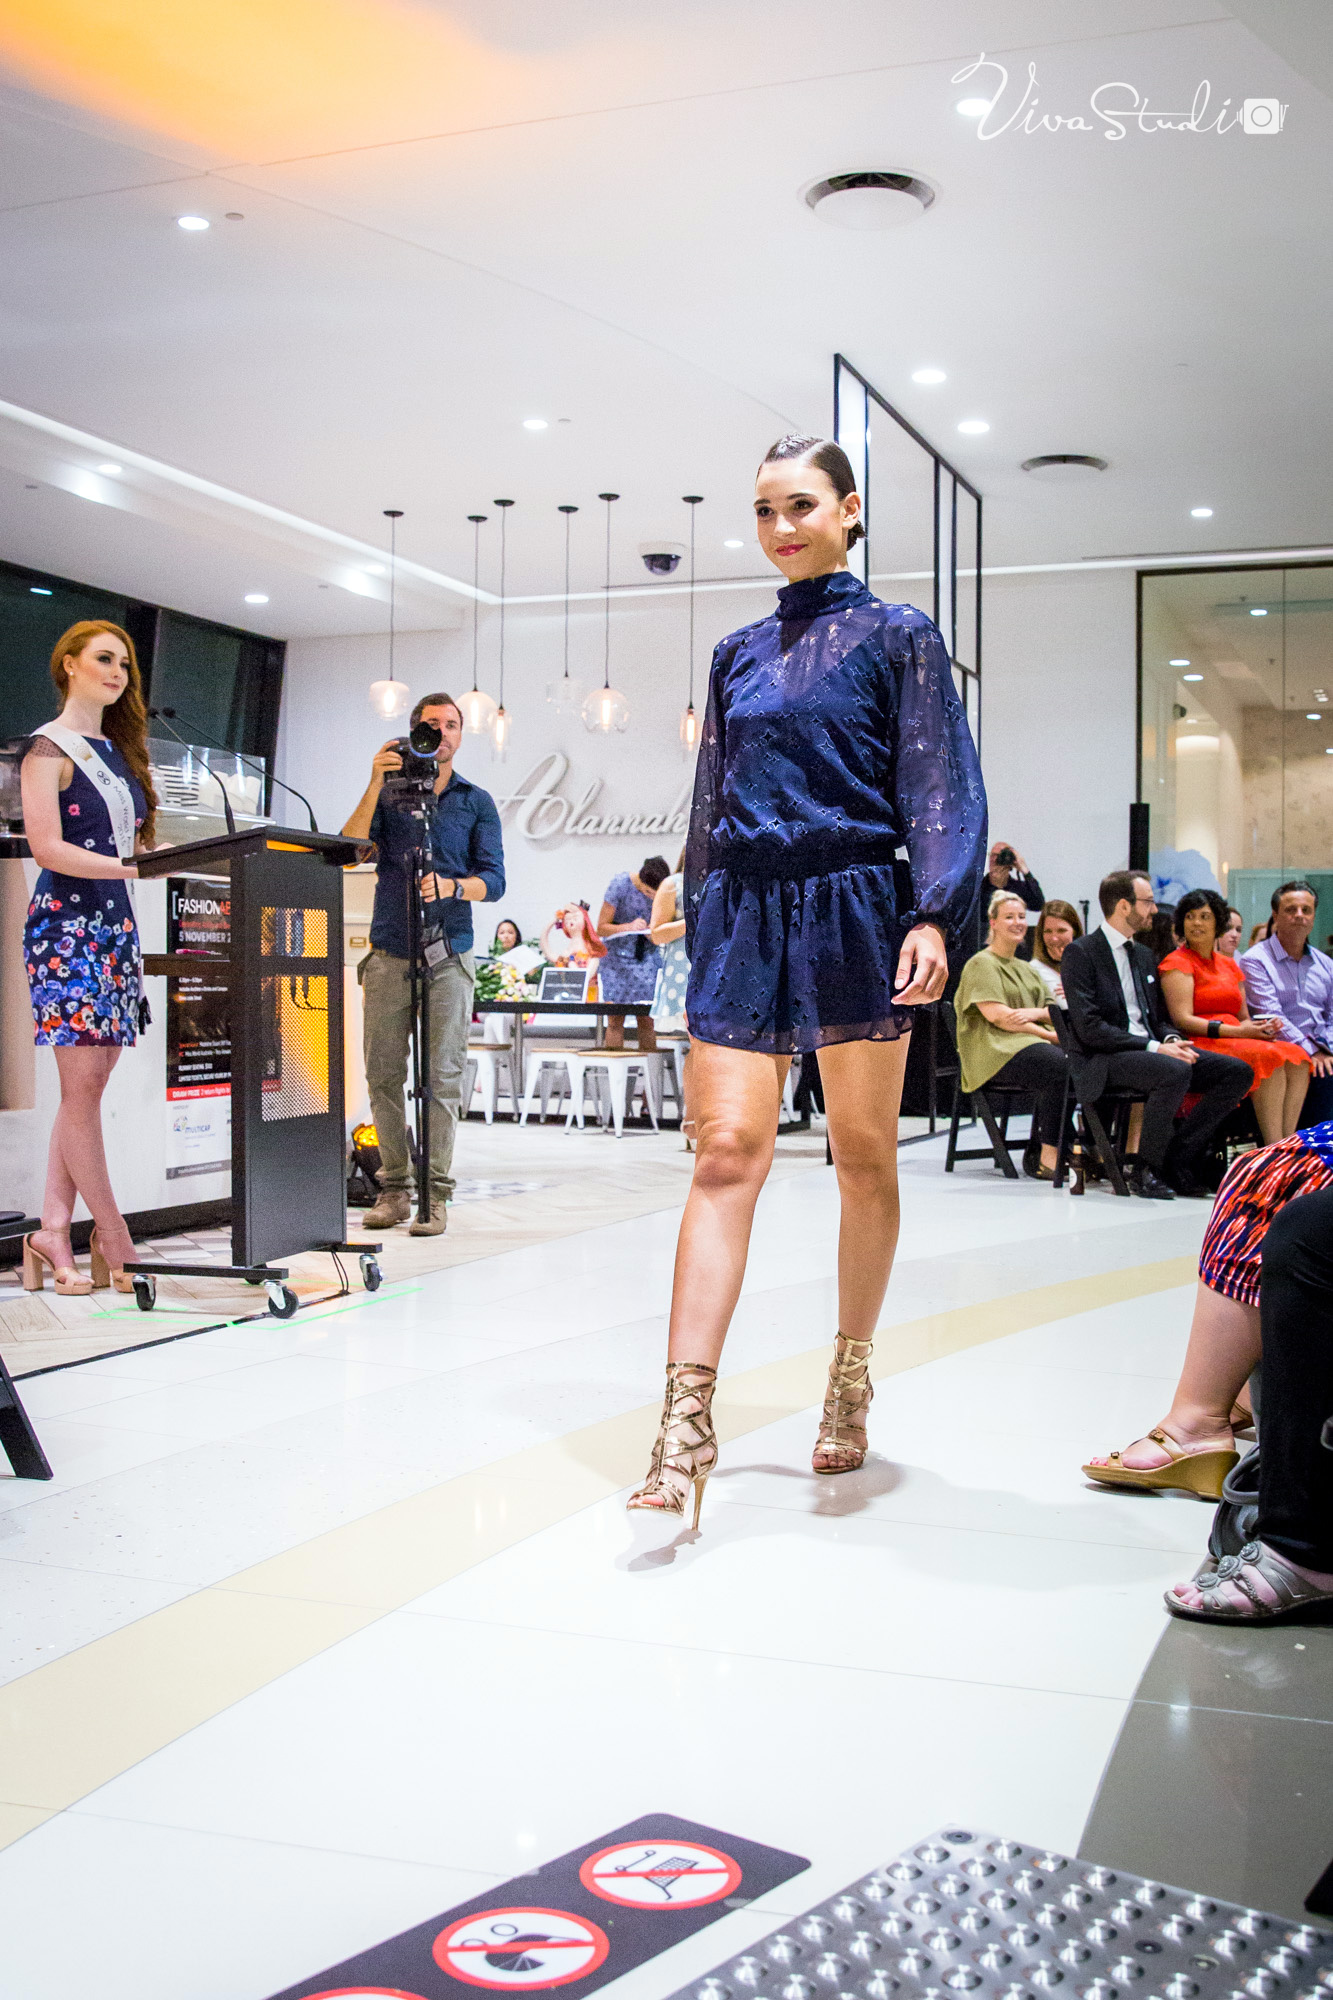 VivaStudio_Design_Photograpphy_Brisbane_Event_Fashionable_20151105_0232